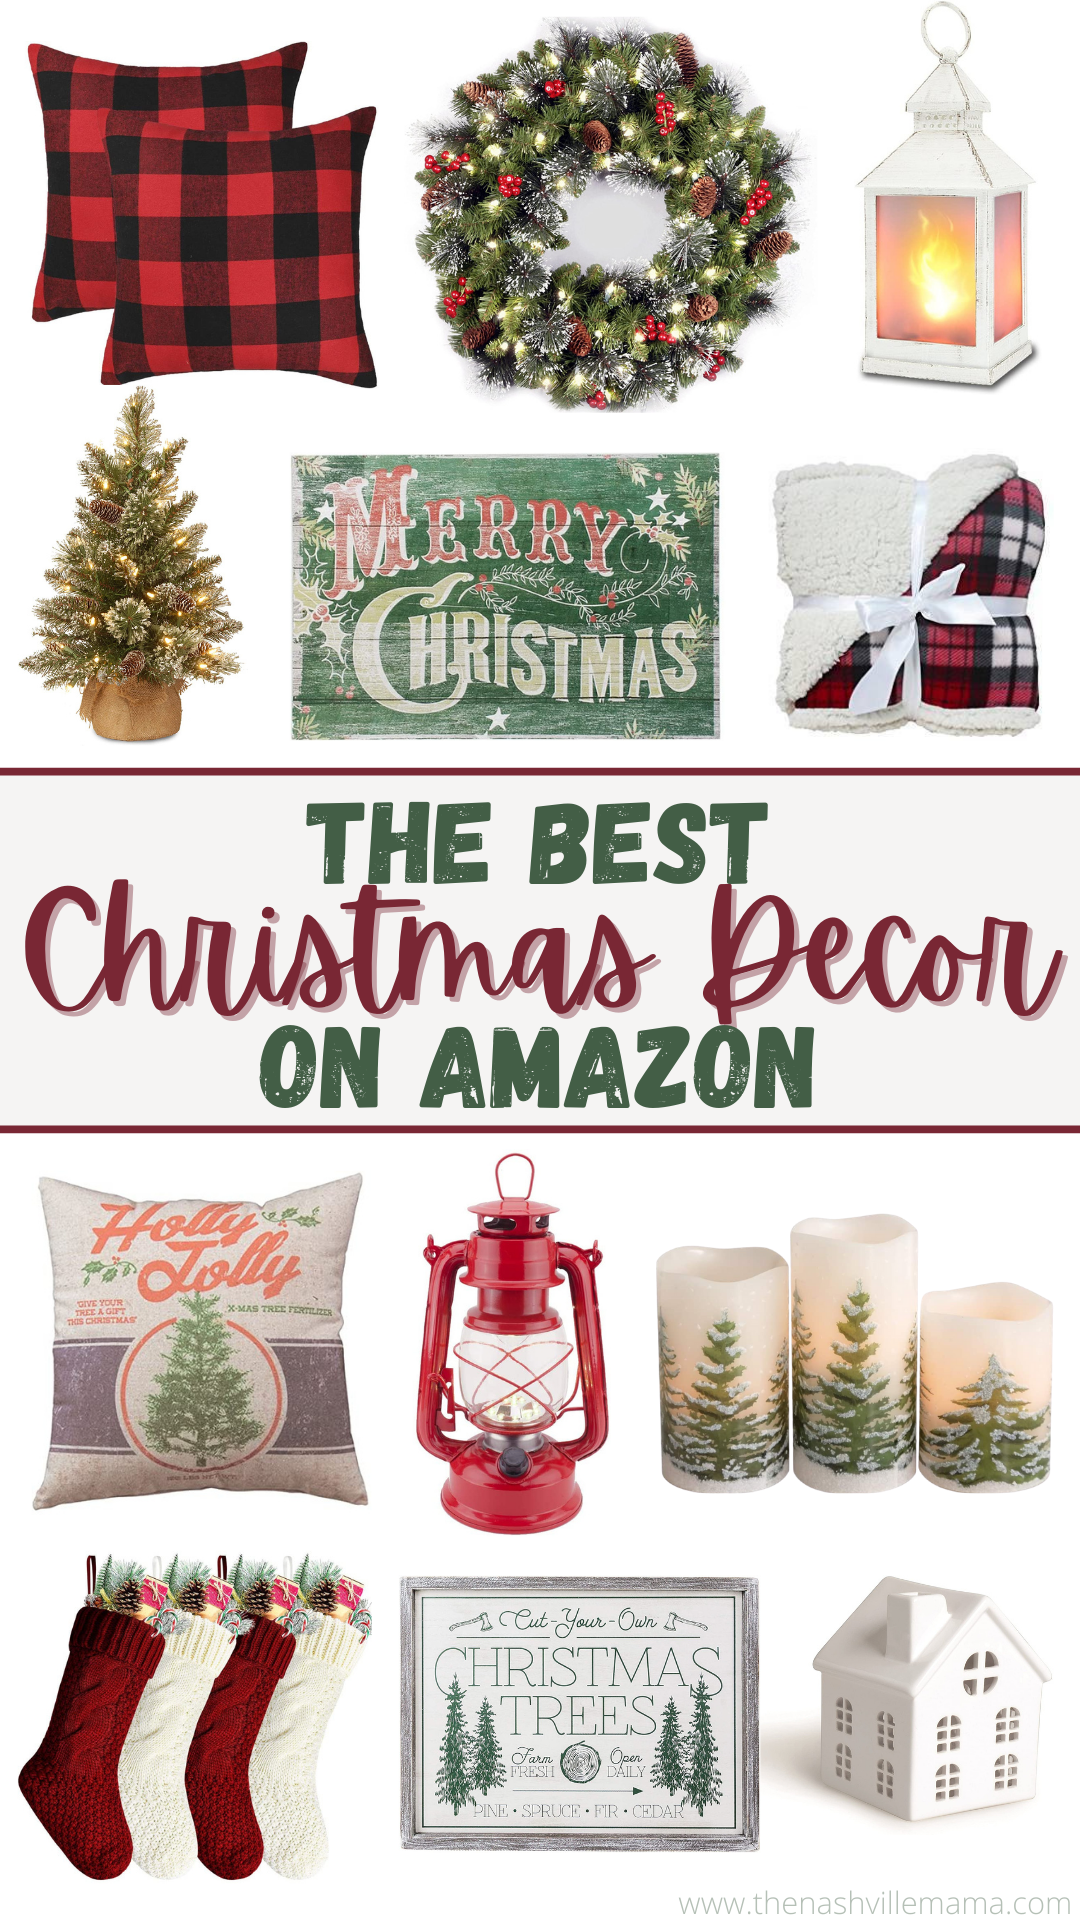 The Best Selection Of Christmas Decor On Amazon In 2020 Affordable Christmas Decorations Christmas Decorations Rustic Christmas